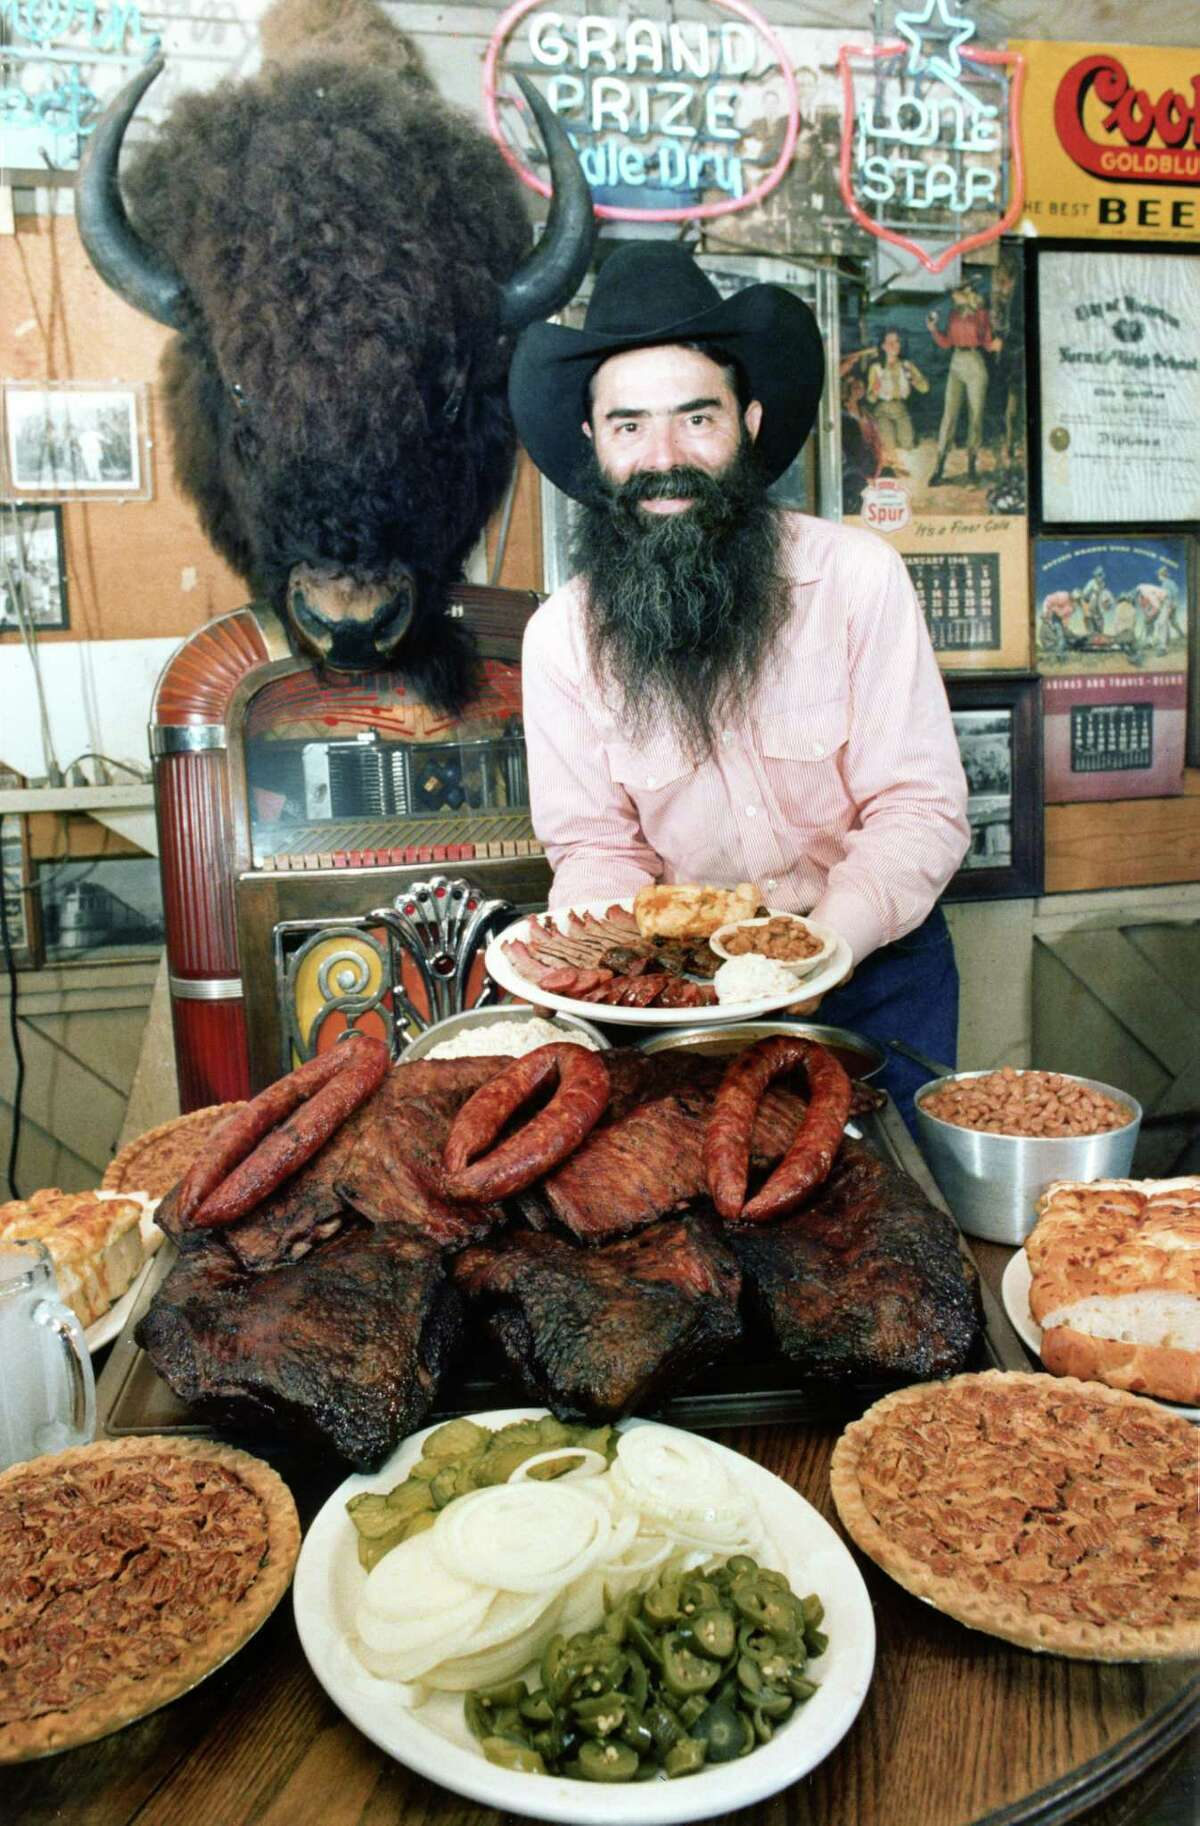 Clockwise from left: Houston's Goode Co. Barbeque, founded by the late Jim Goode, has made Texas Monthly's best-barbecue list multiple times; Thelma's Bar-B-Que, which serves beef brisket, made the magazine's list in 2003; Steve Burns prepares the MLB Special, slabs of ribs and beef, at Burns Bar-B-Q, also recognized by Texas Monthly.